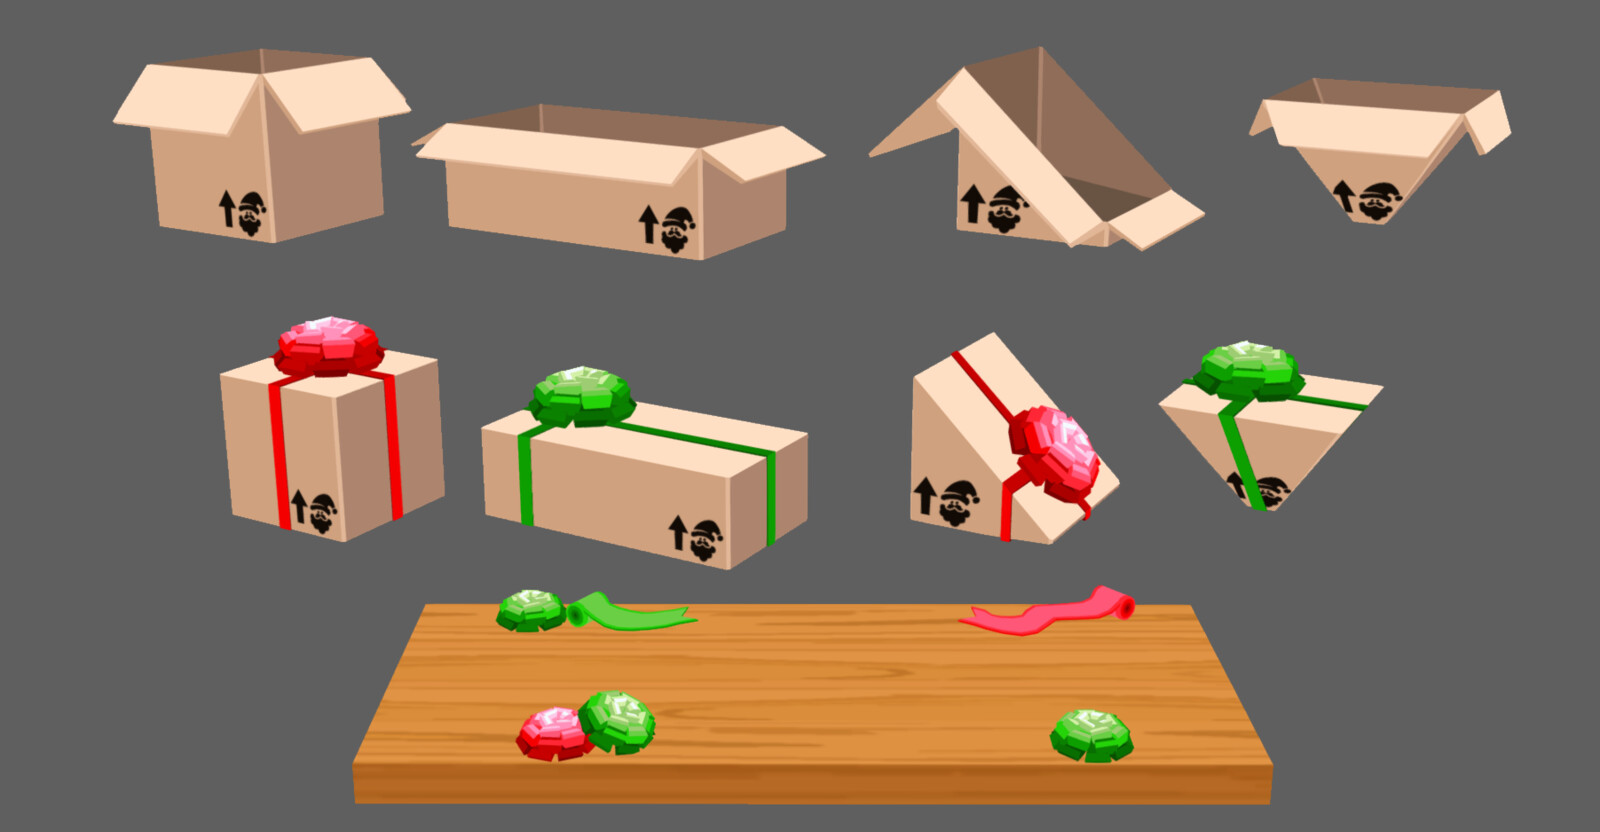 All the weird shaped boxes (to make it more fun and increase the difficulty)